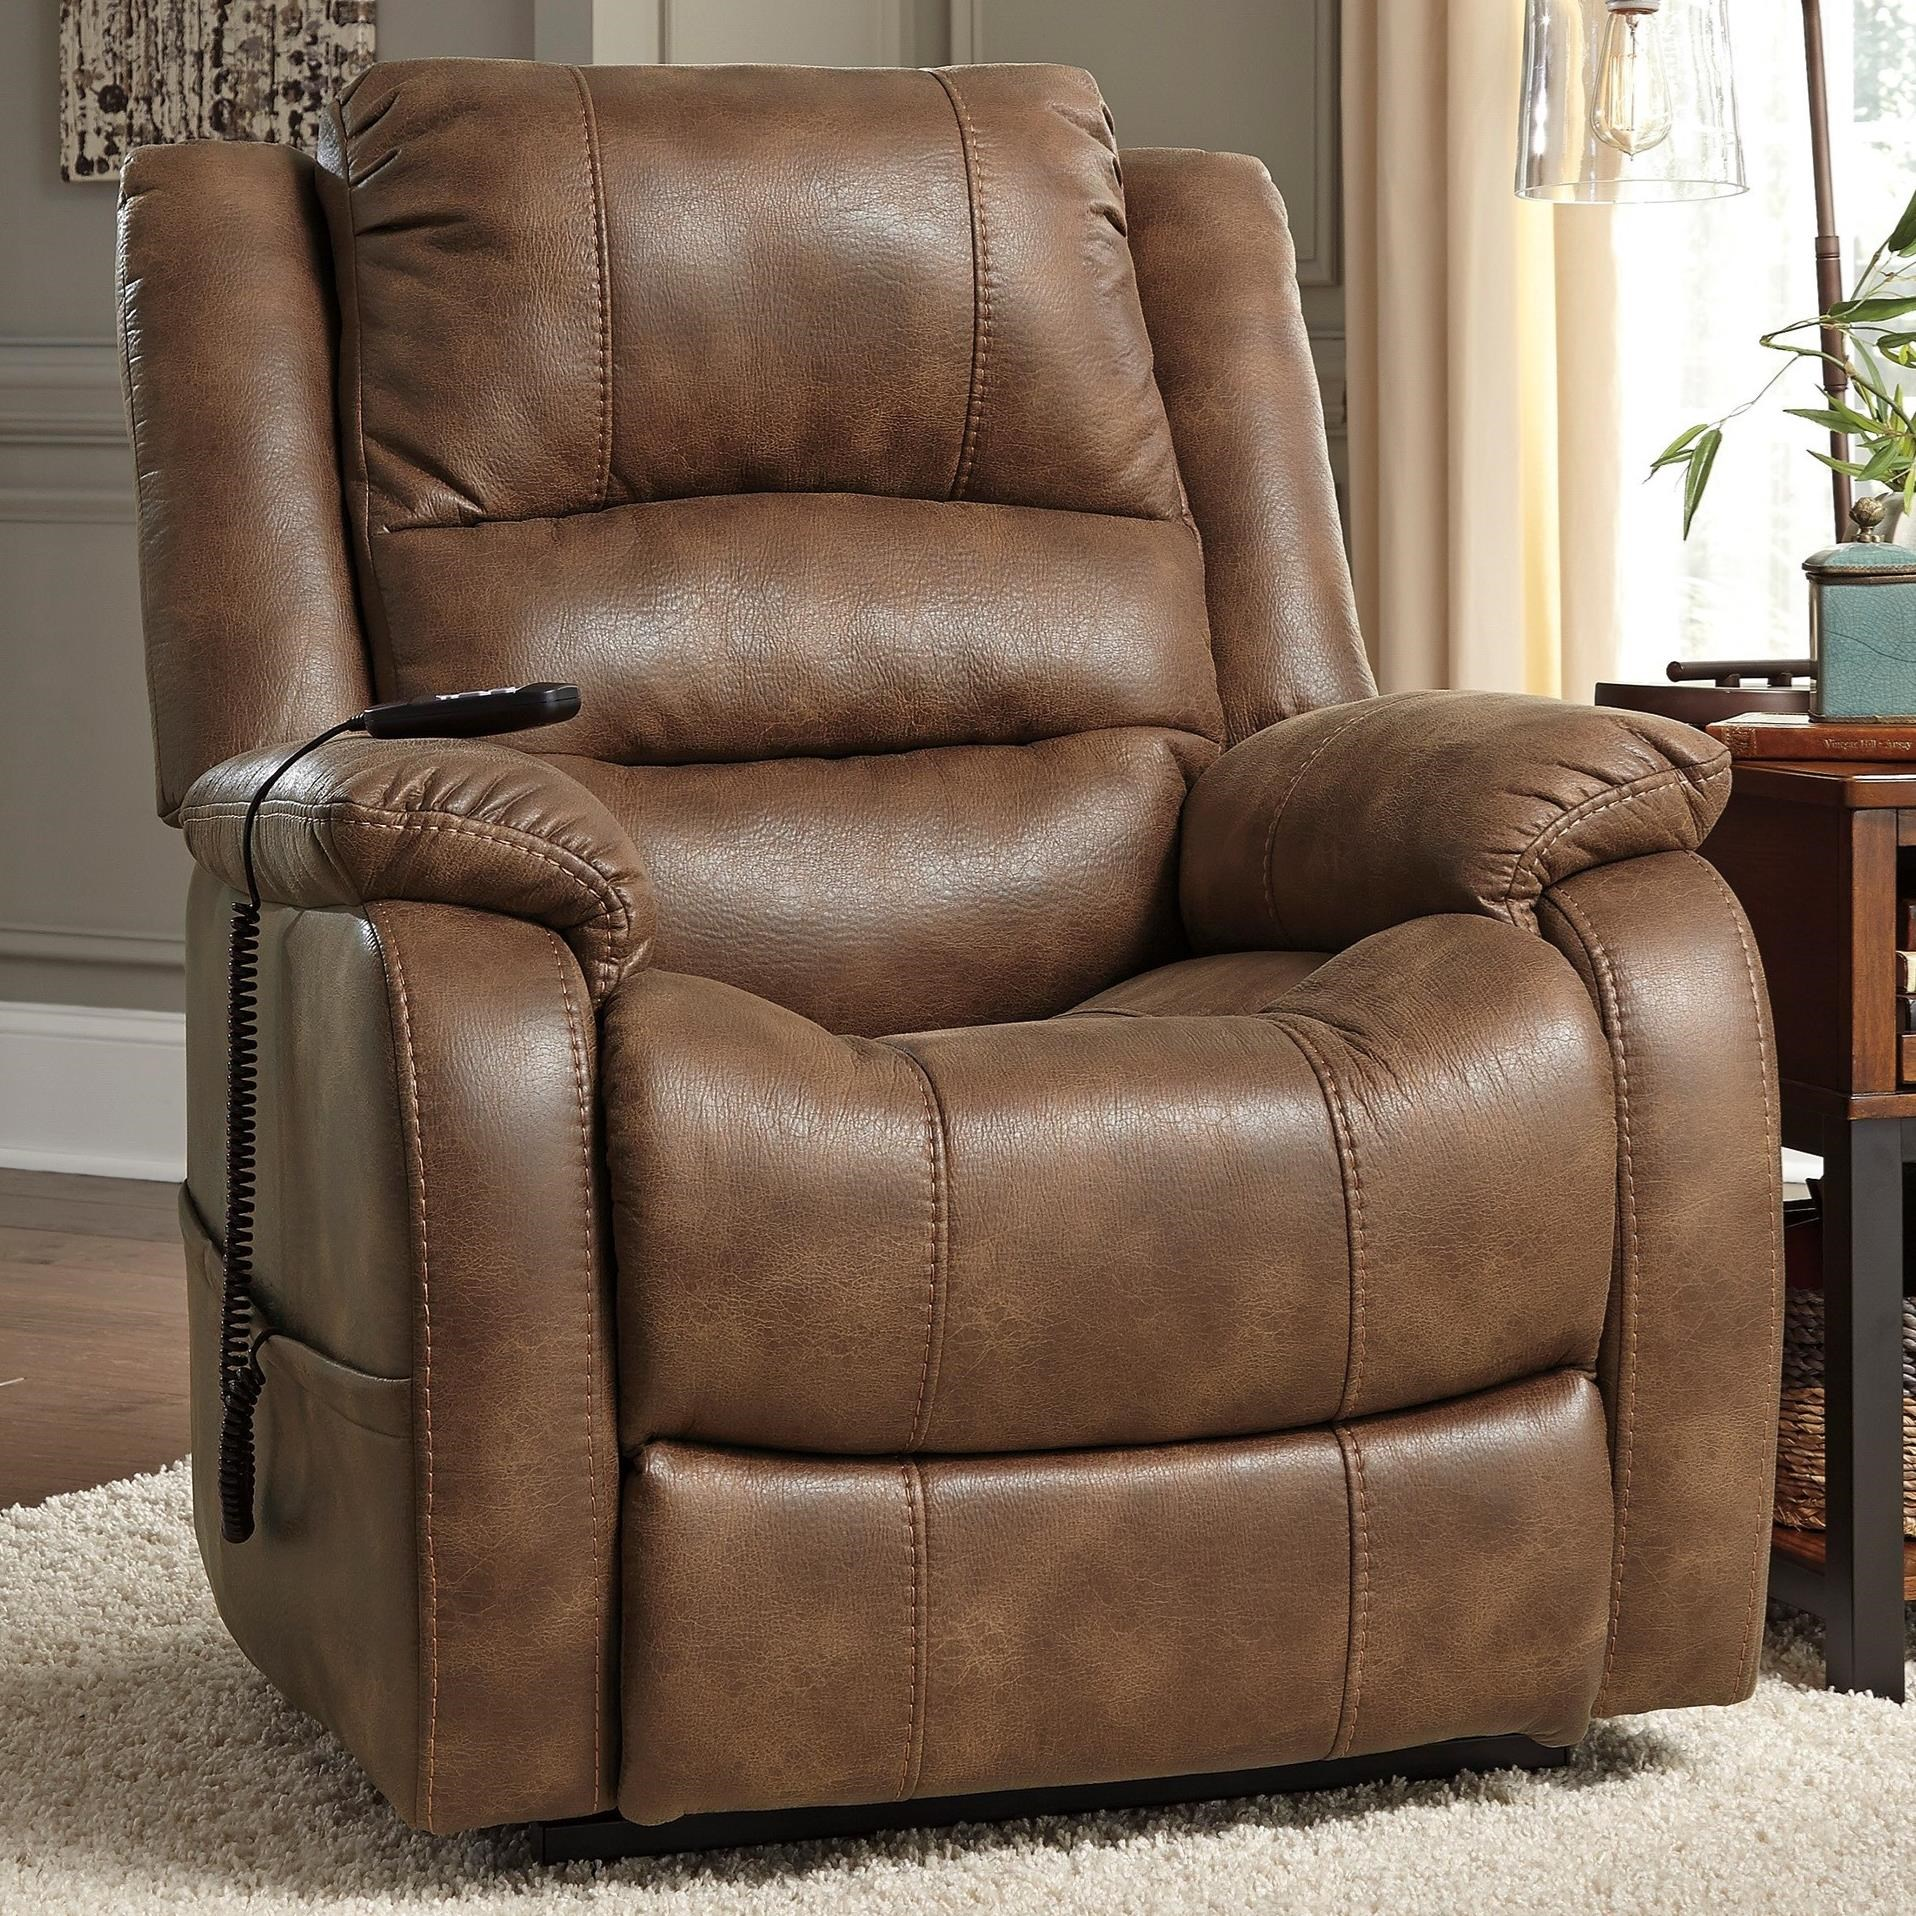 Lift Chairs Recliners Signature Design By Ashley Yandel Faux Leather Power Lift